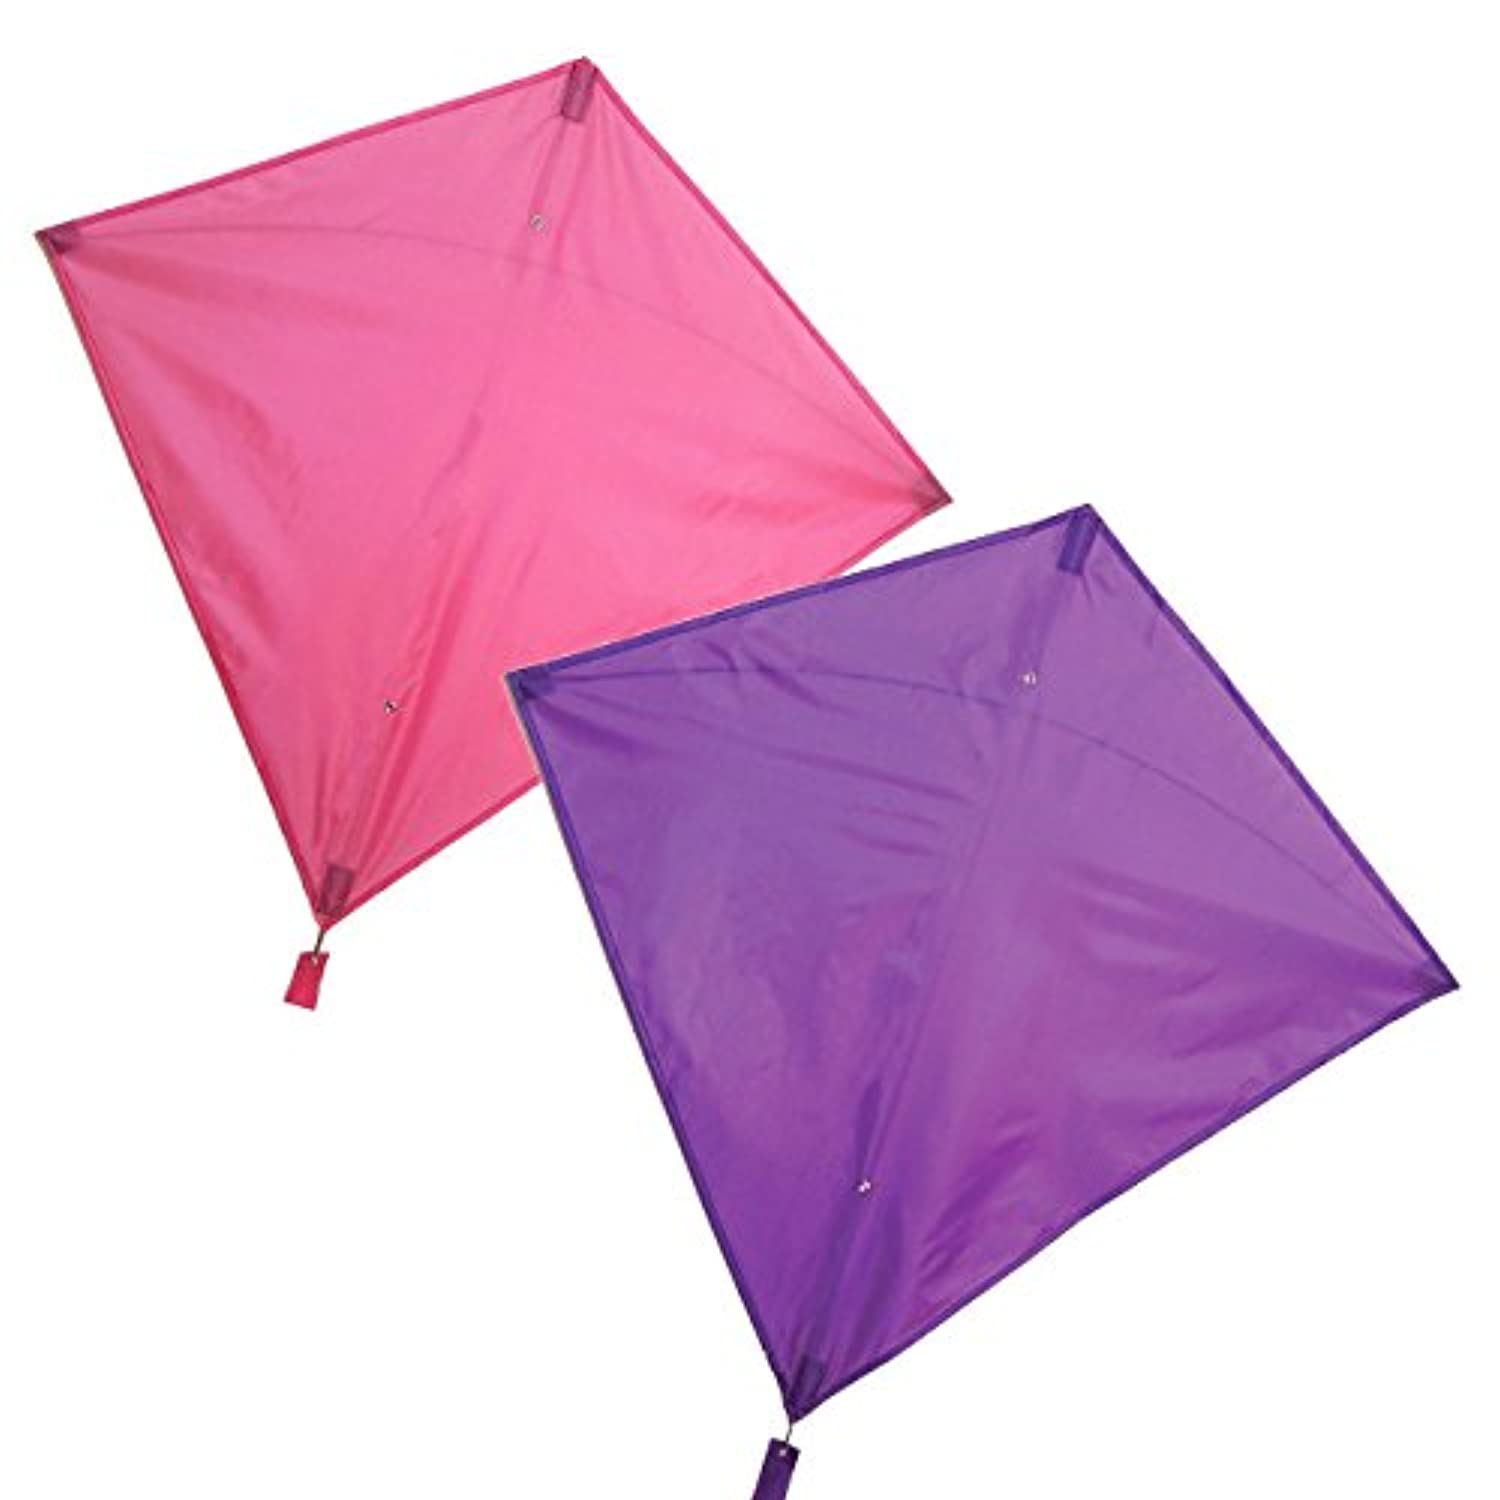 Maven Gifts : In the Breeze 2 - Pack Kiteバンドル – 30インチパープルColorfly Diamond Kite with 30-inchピンクColorfly Diamond Kite – Great for Beginners and Kids